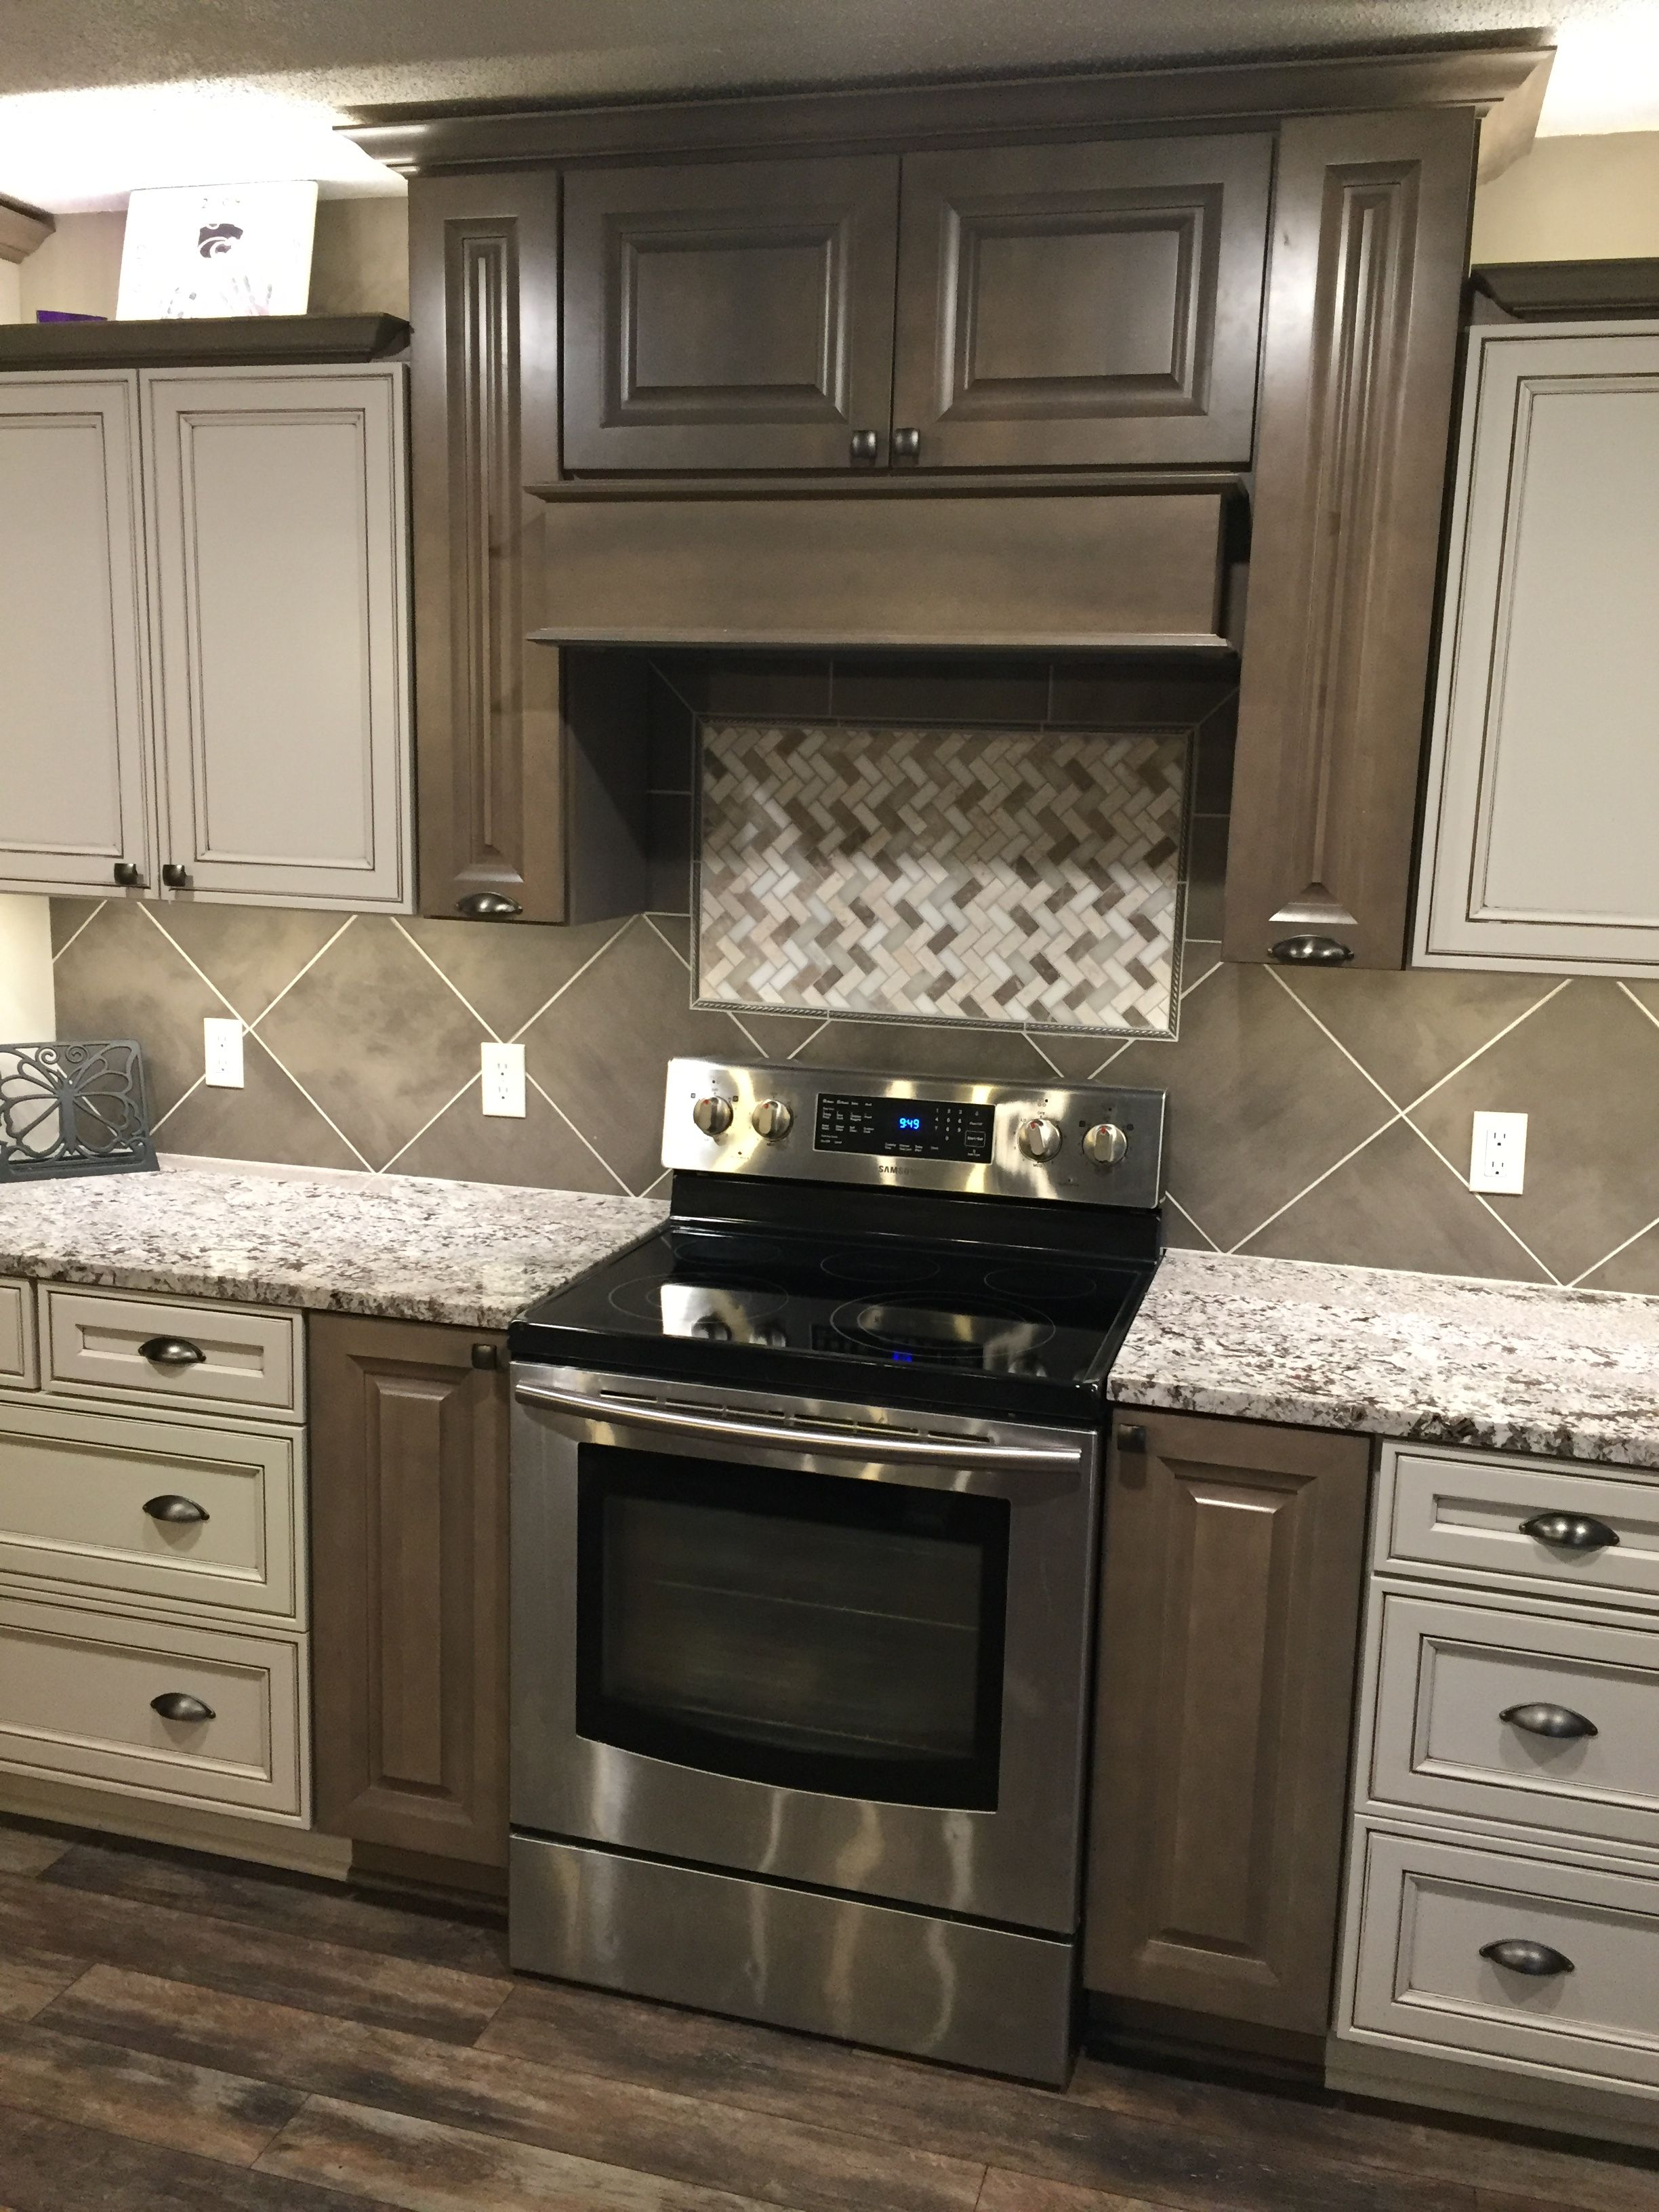 A Mix Of Diamond Reflections Merrin Seal And Peyton Dover With Amaretto Creme Gla Diamond Kitchen Cabinets Glazed Kitchen Cabinets Kitchen Remodeling Services